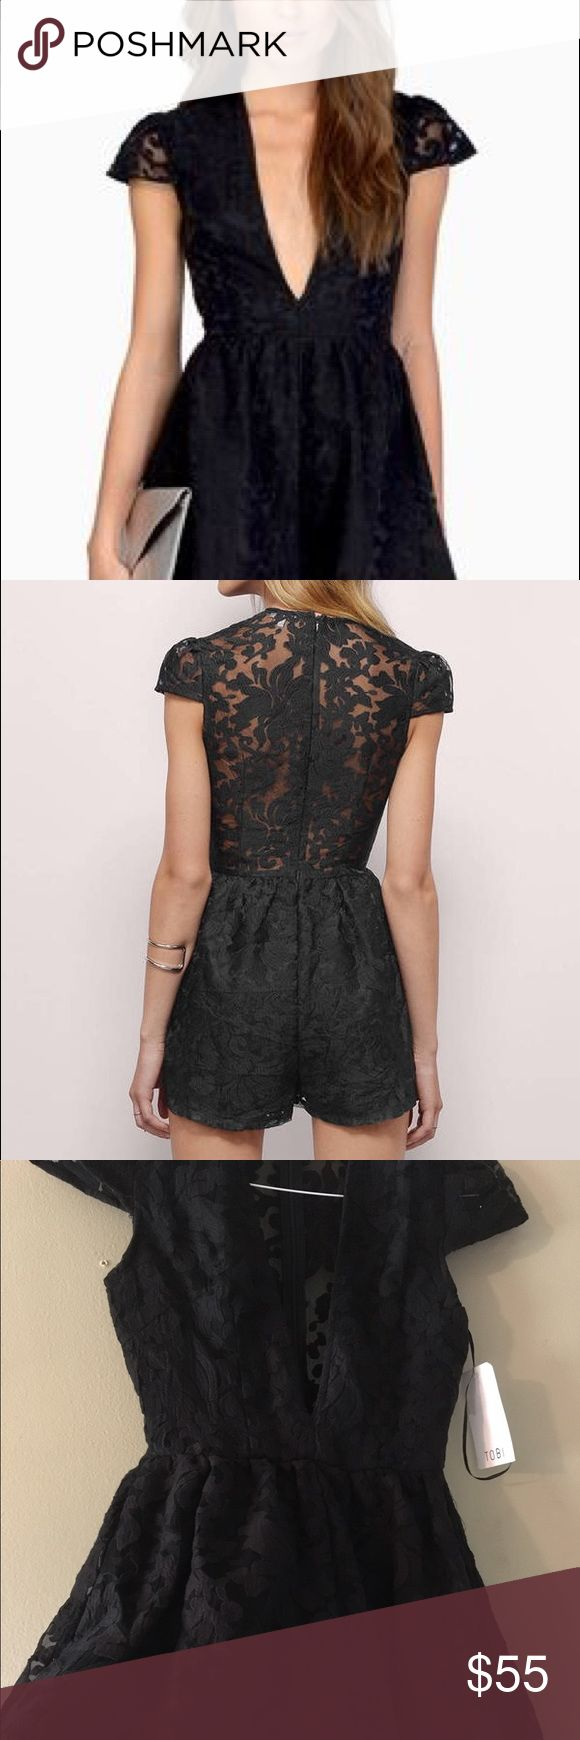 TOBI Medium Black Lace Romper TOBI Medium Black Lace Romper with Deep V Cut and Sheer Lace Back. NWOT. Never worn. Excellent Condition. Tobi Pants Jumpsuits & Rompers